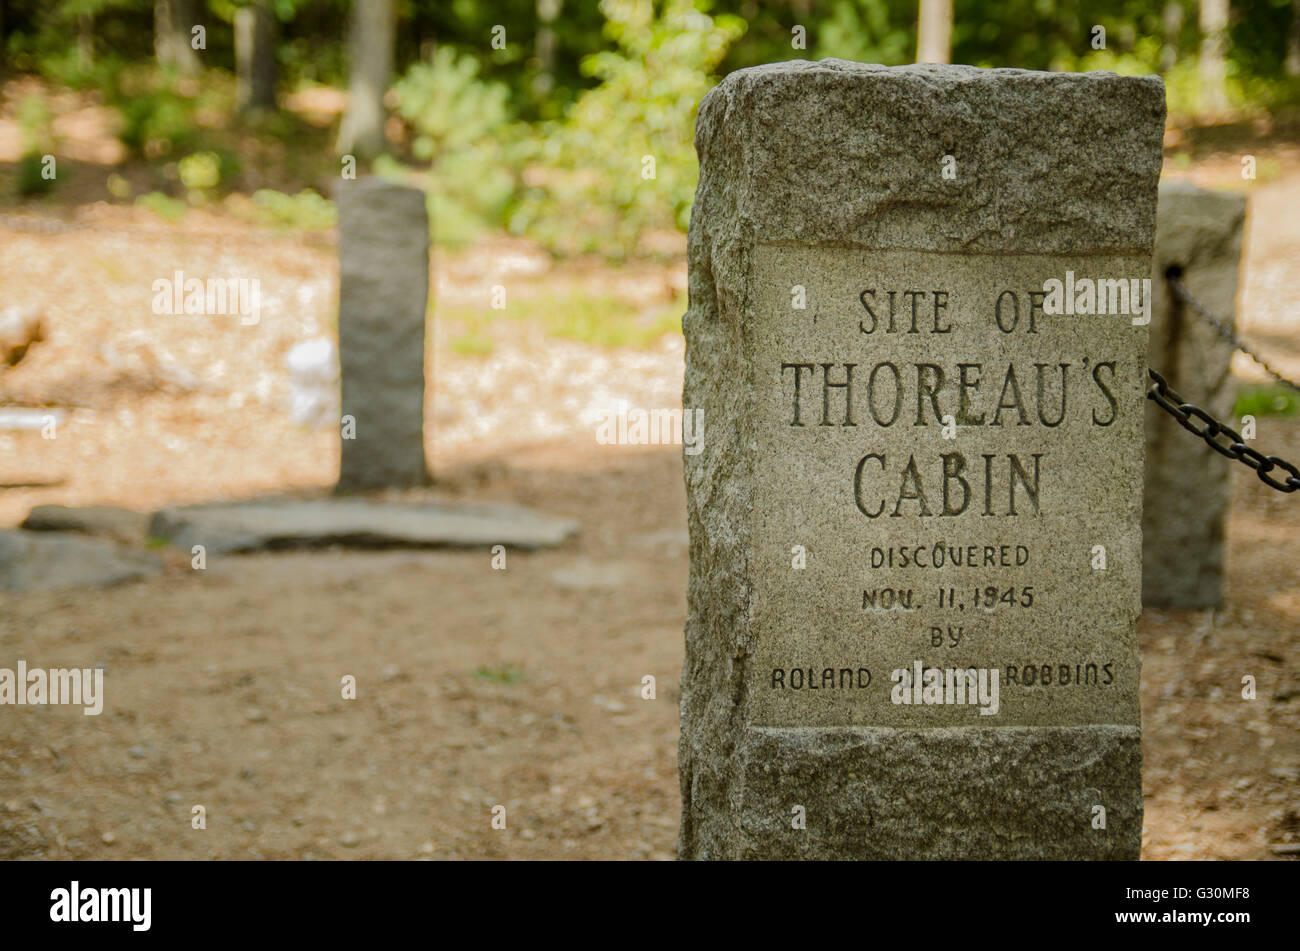 Memorial Stone At The Site Of A Cabin Of Henry David Thoreau